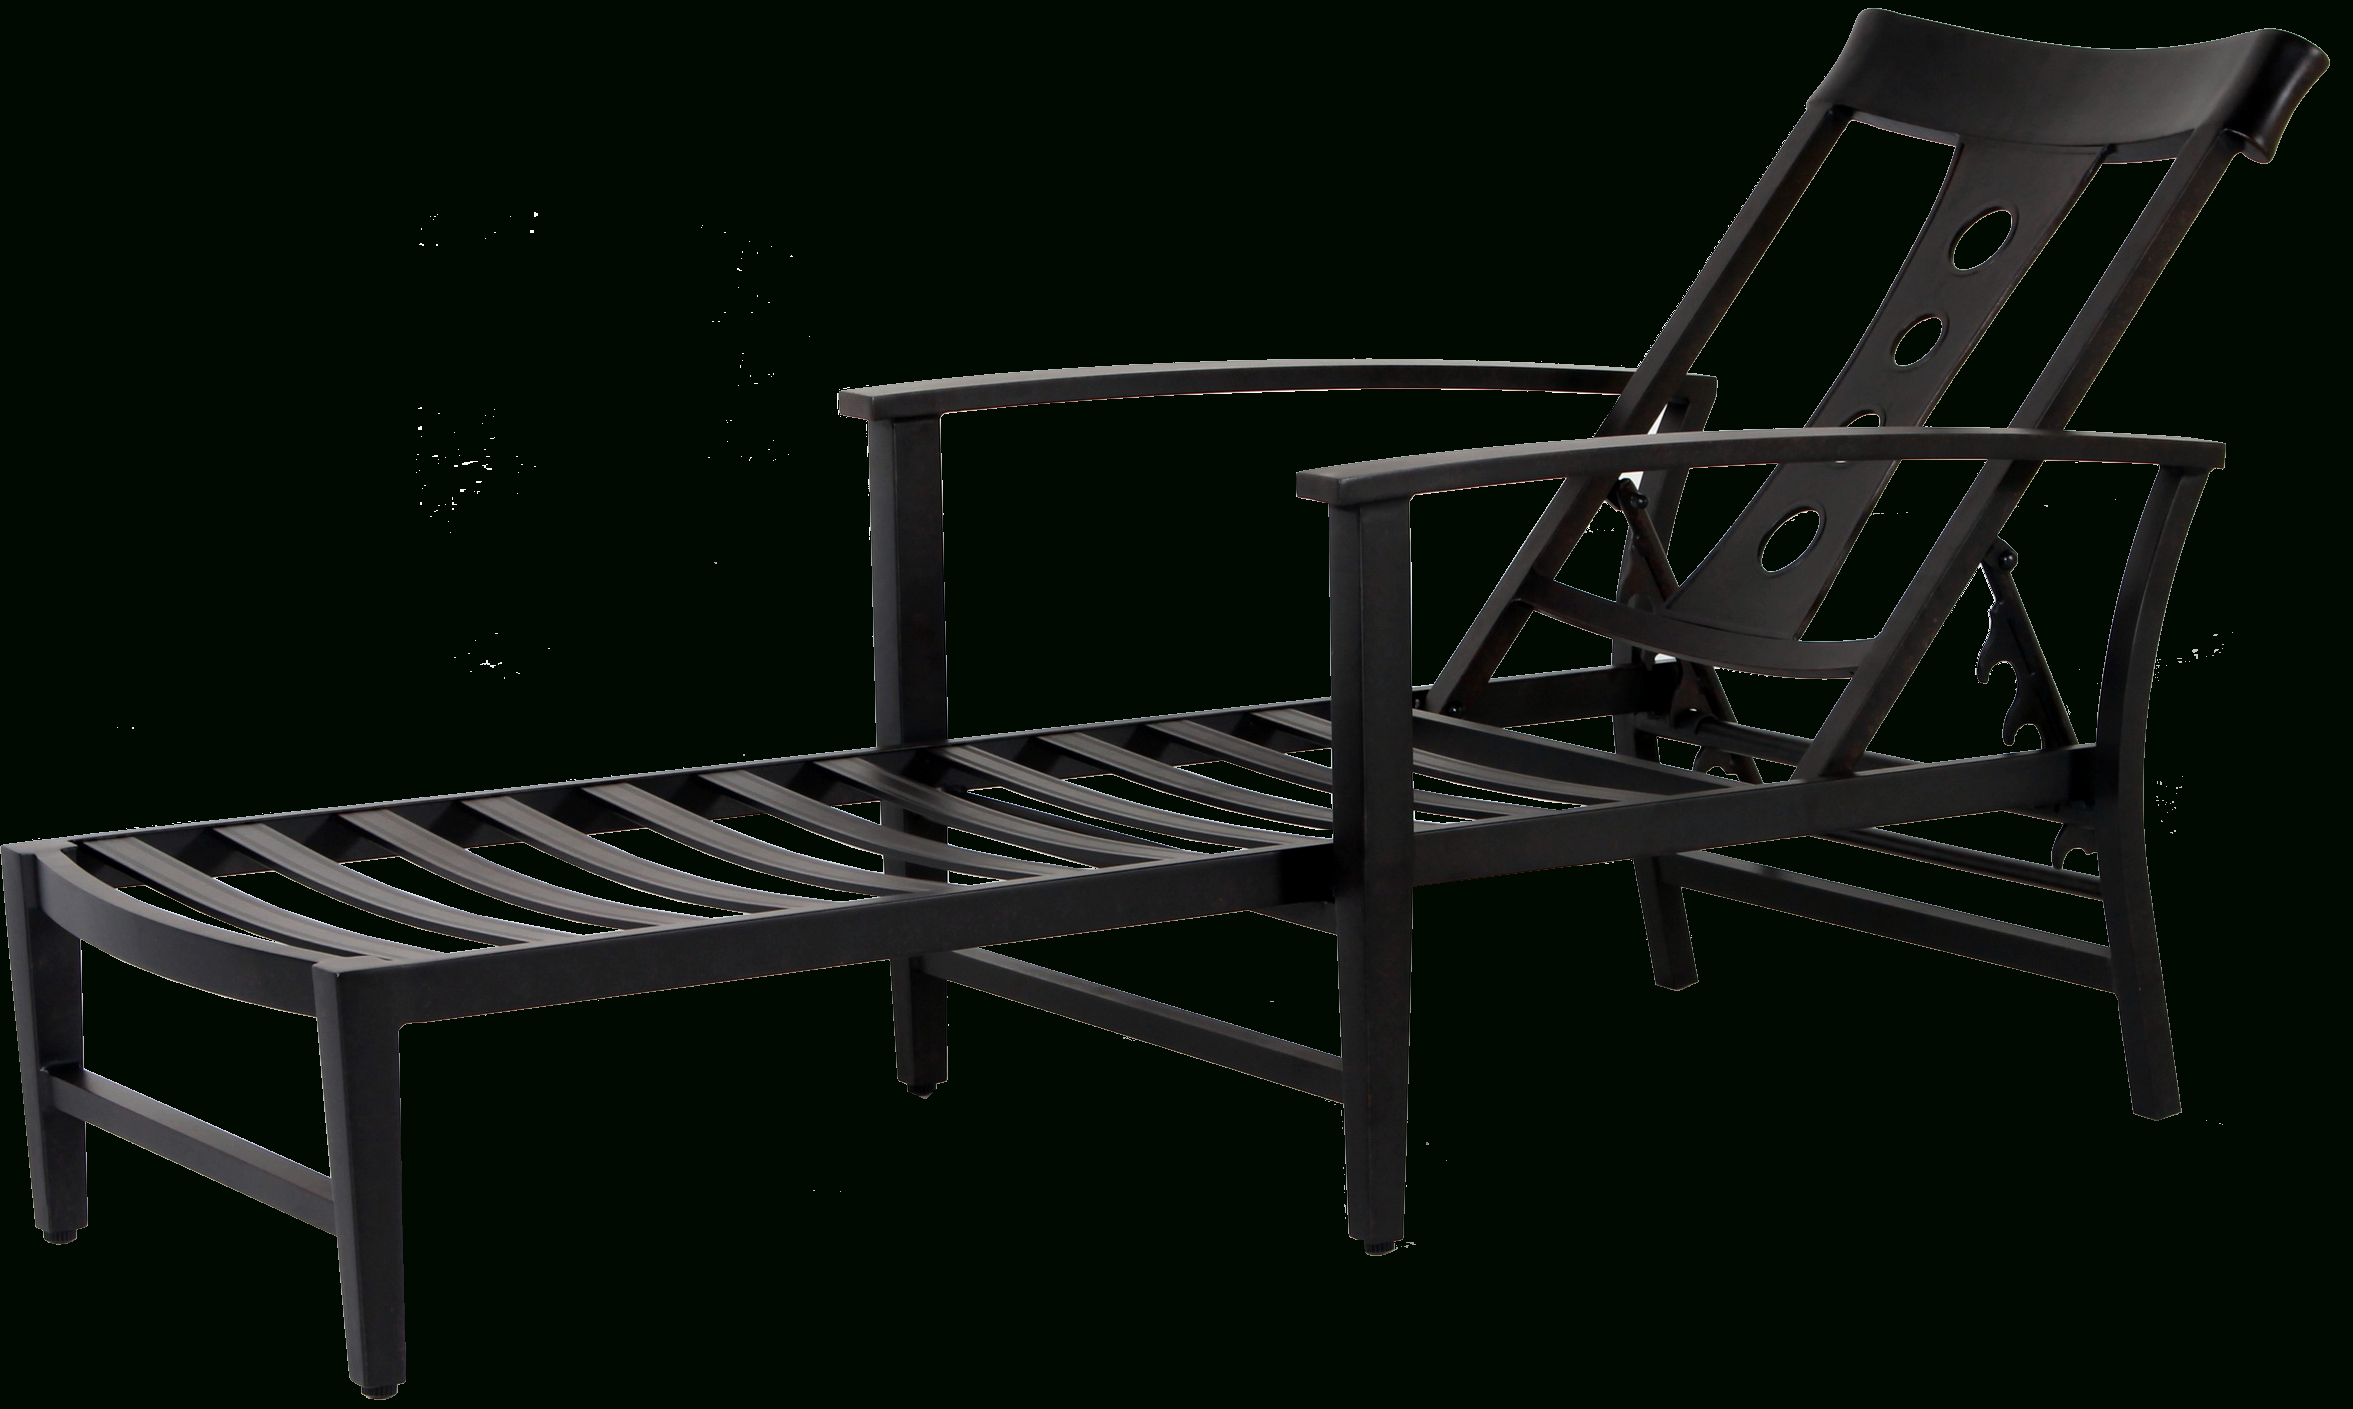 Jamaica Cast Aluminum Patio Furniture Collection – Patio Divas Within Most Current Jamaica Outdoor Chaise Lounges (View 6 of 25)